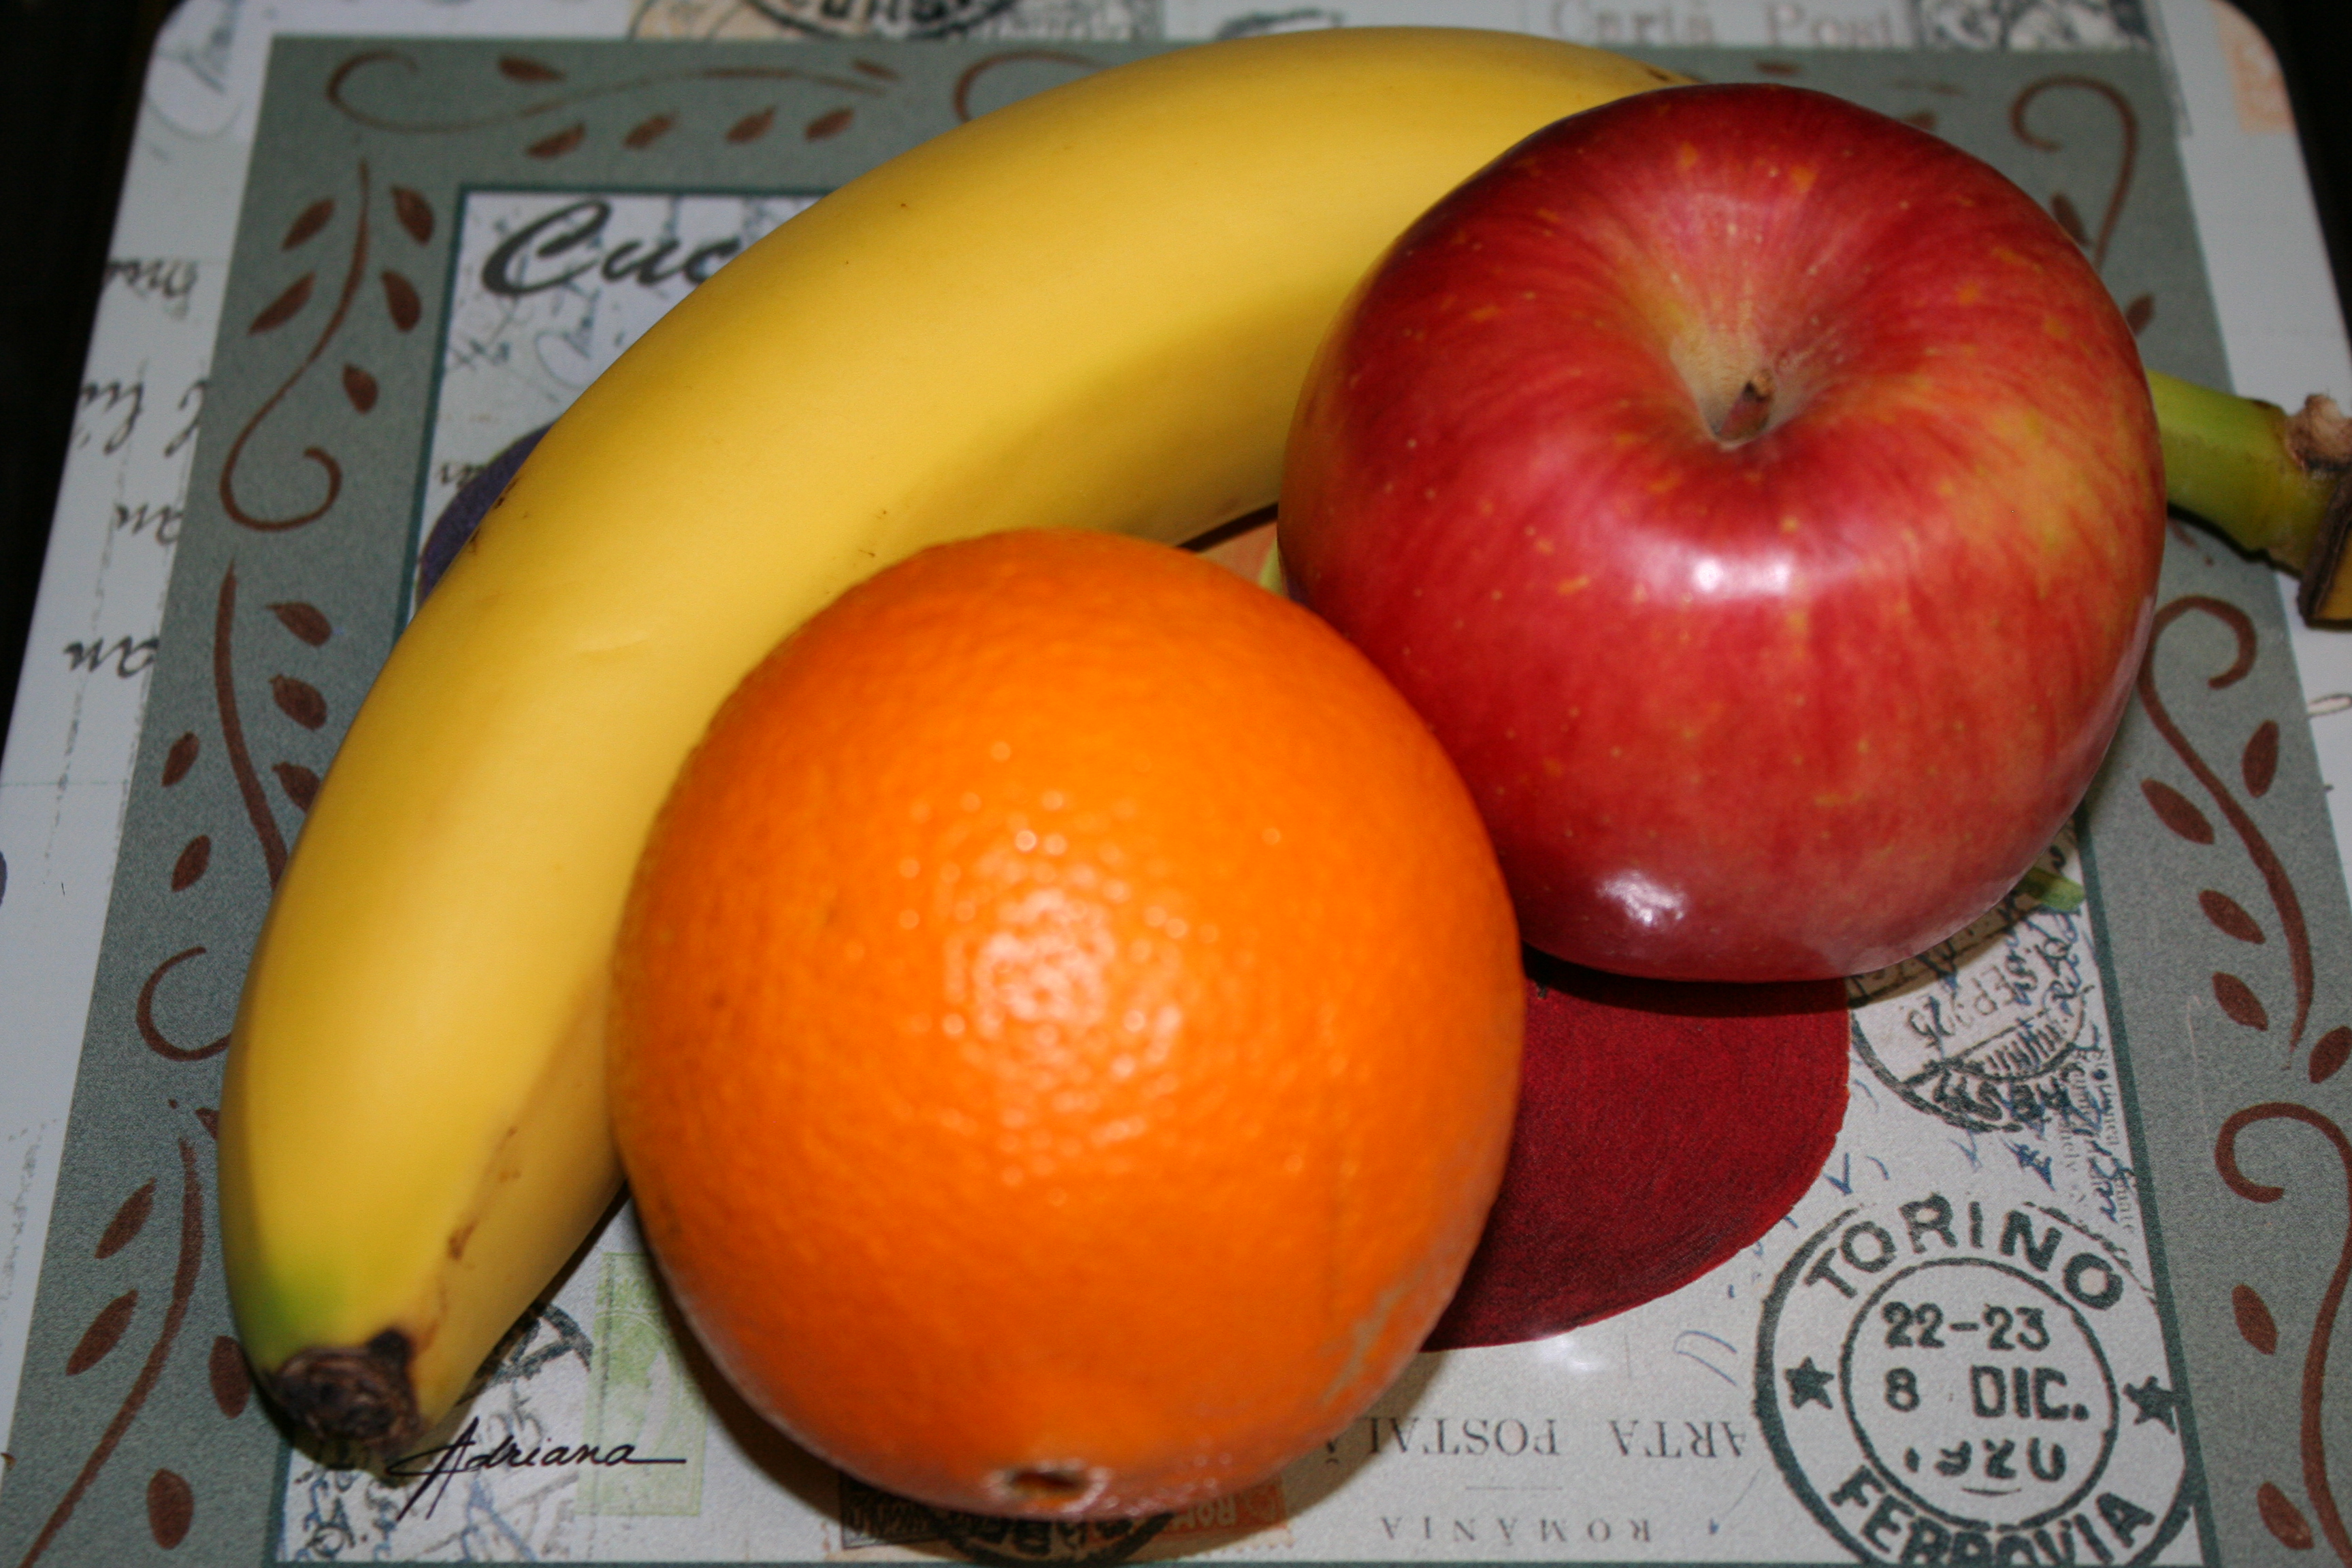 Fruit Images for Object Detection | Kaggle